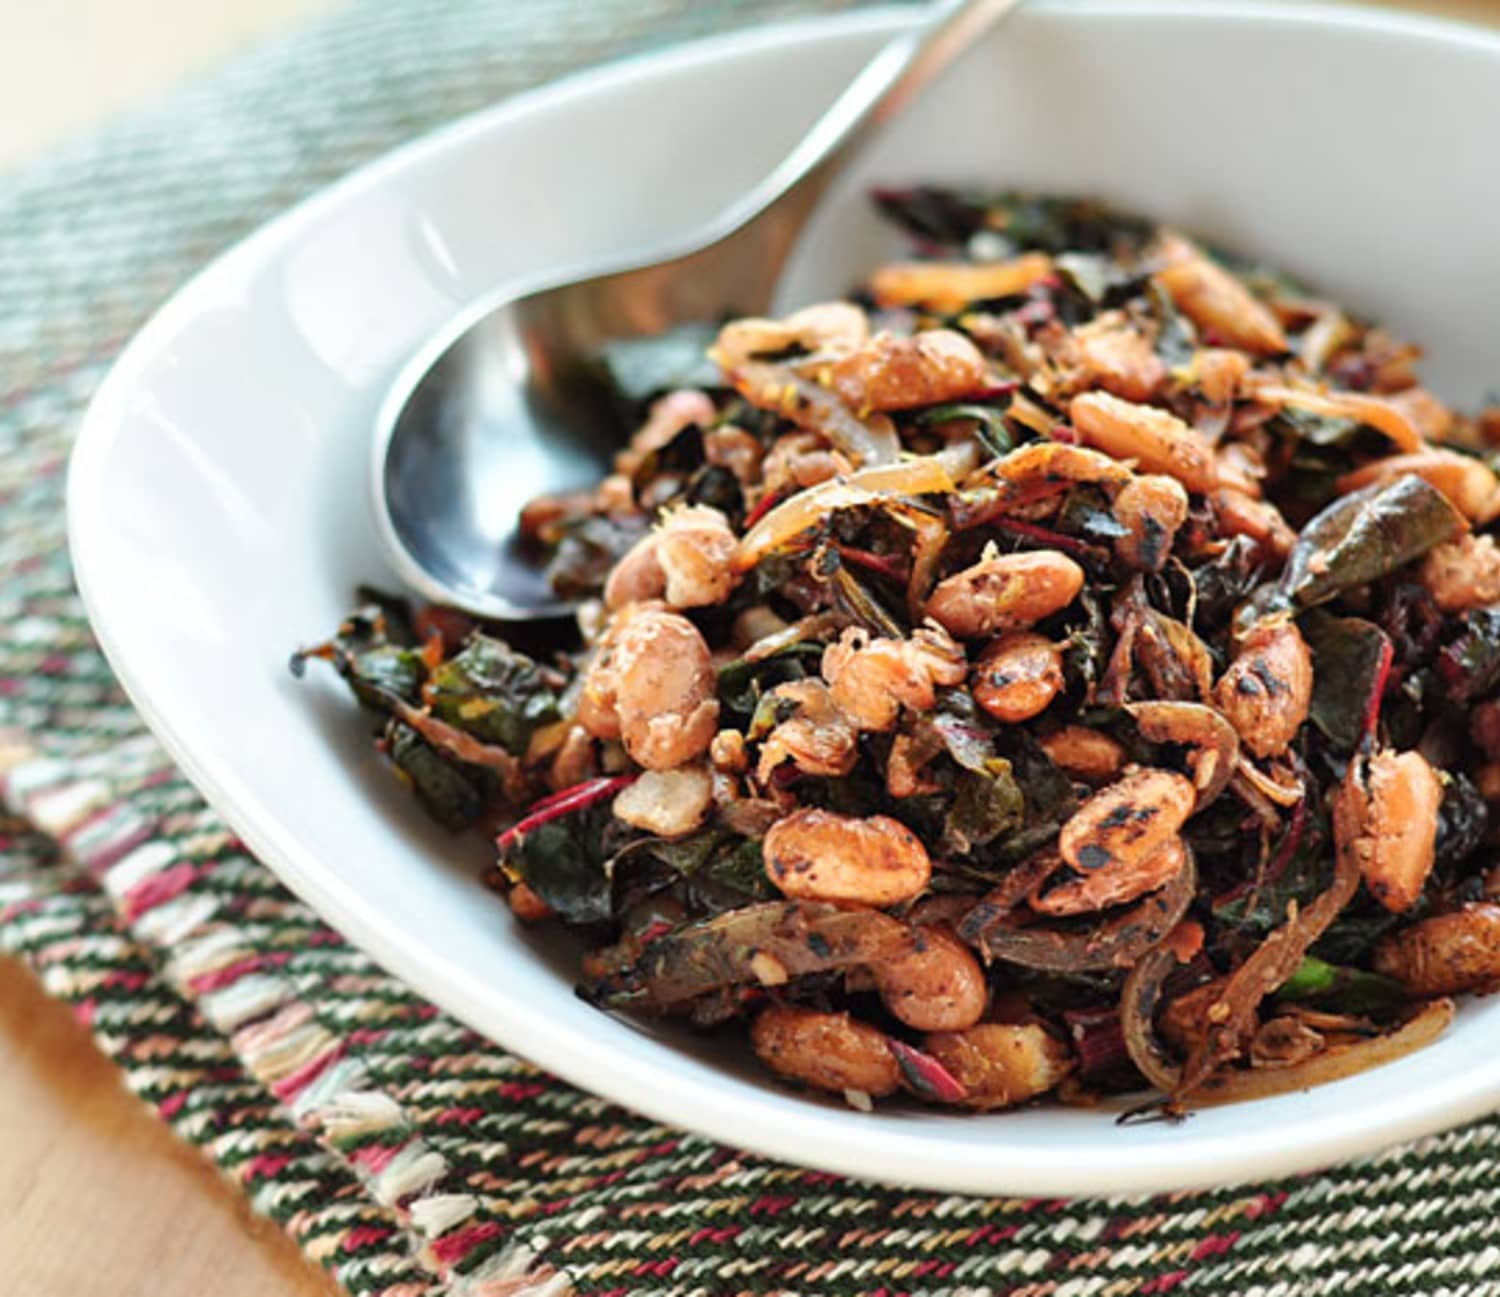 Recipe: Crispy Pan-Fried Beans with Wilted Greens